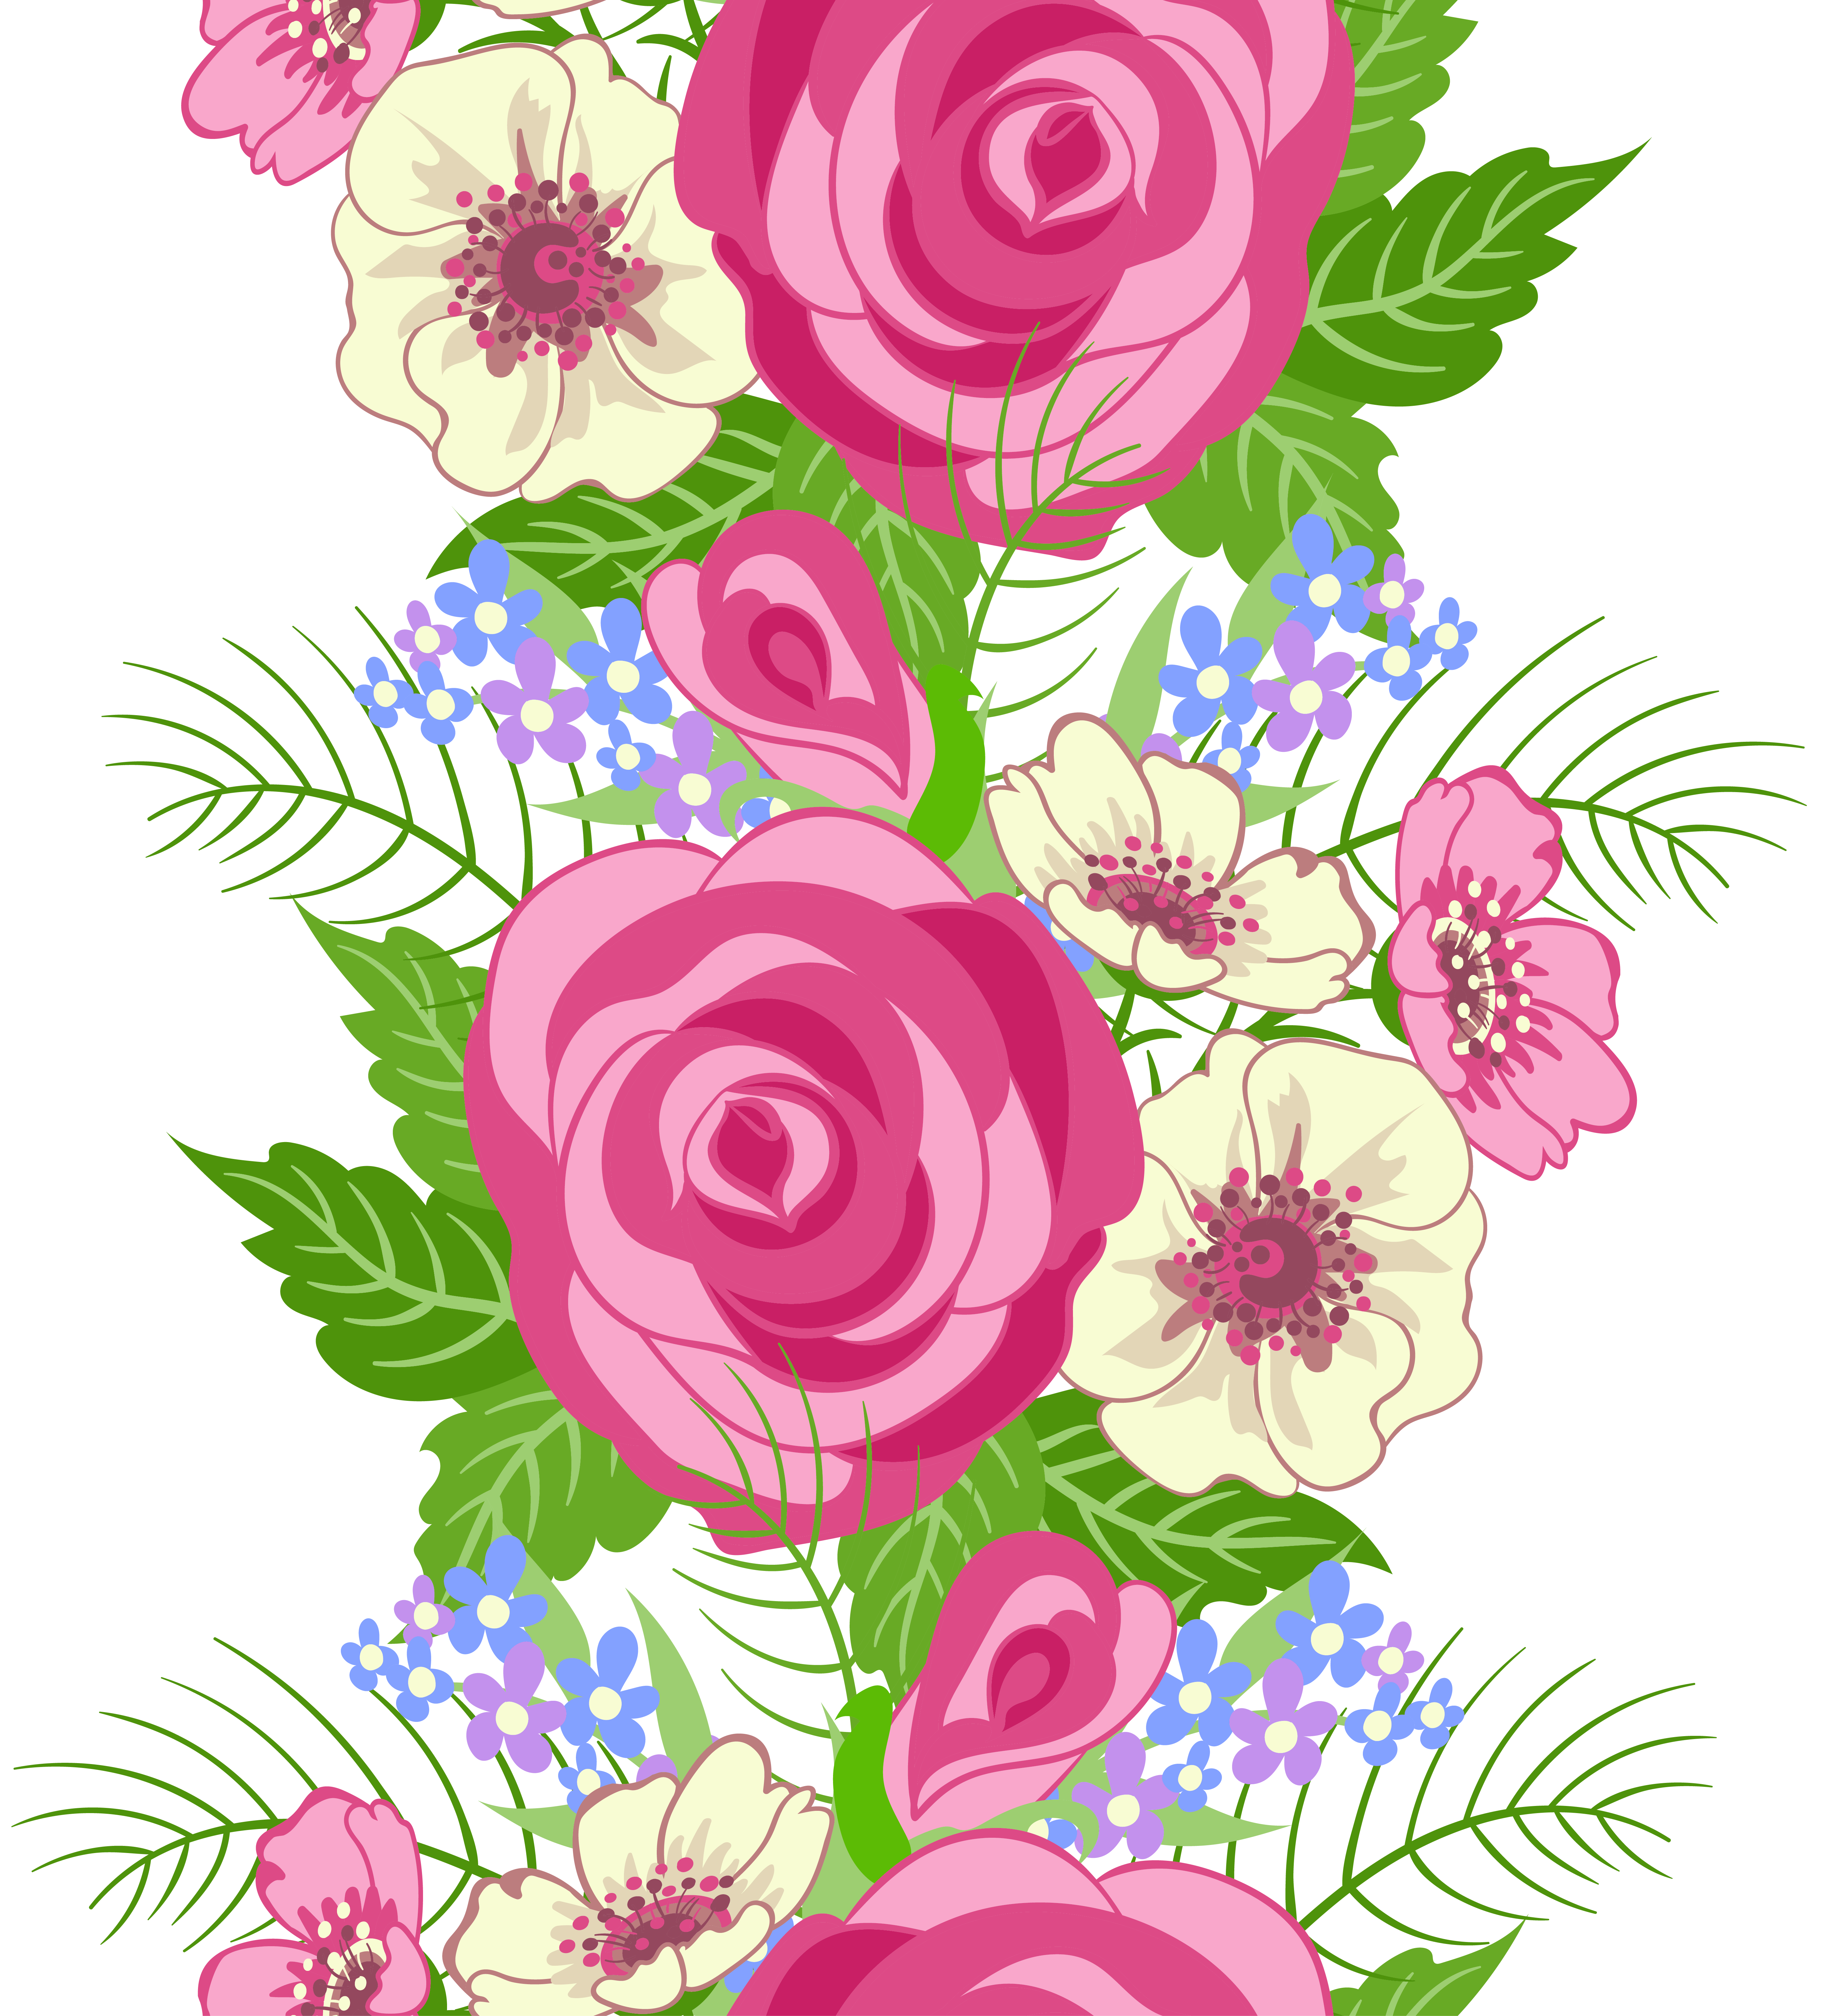 Floral element png image. Clipart roses embroidery